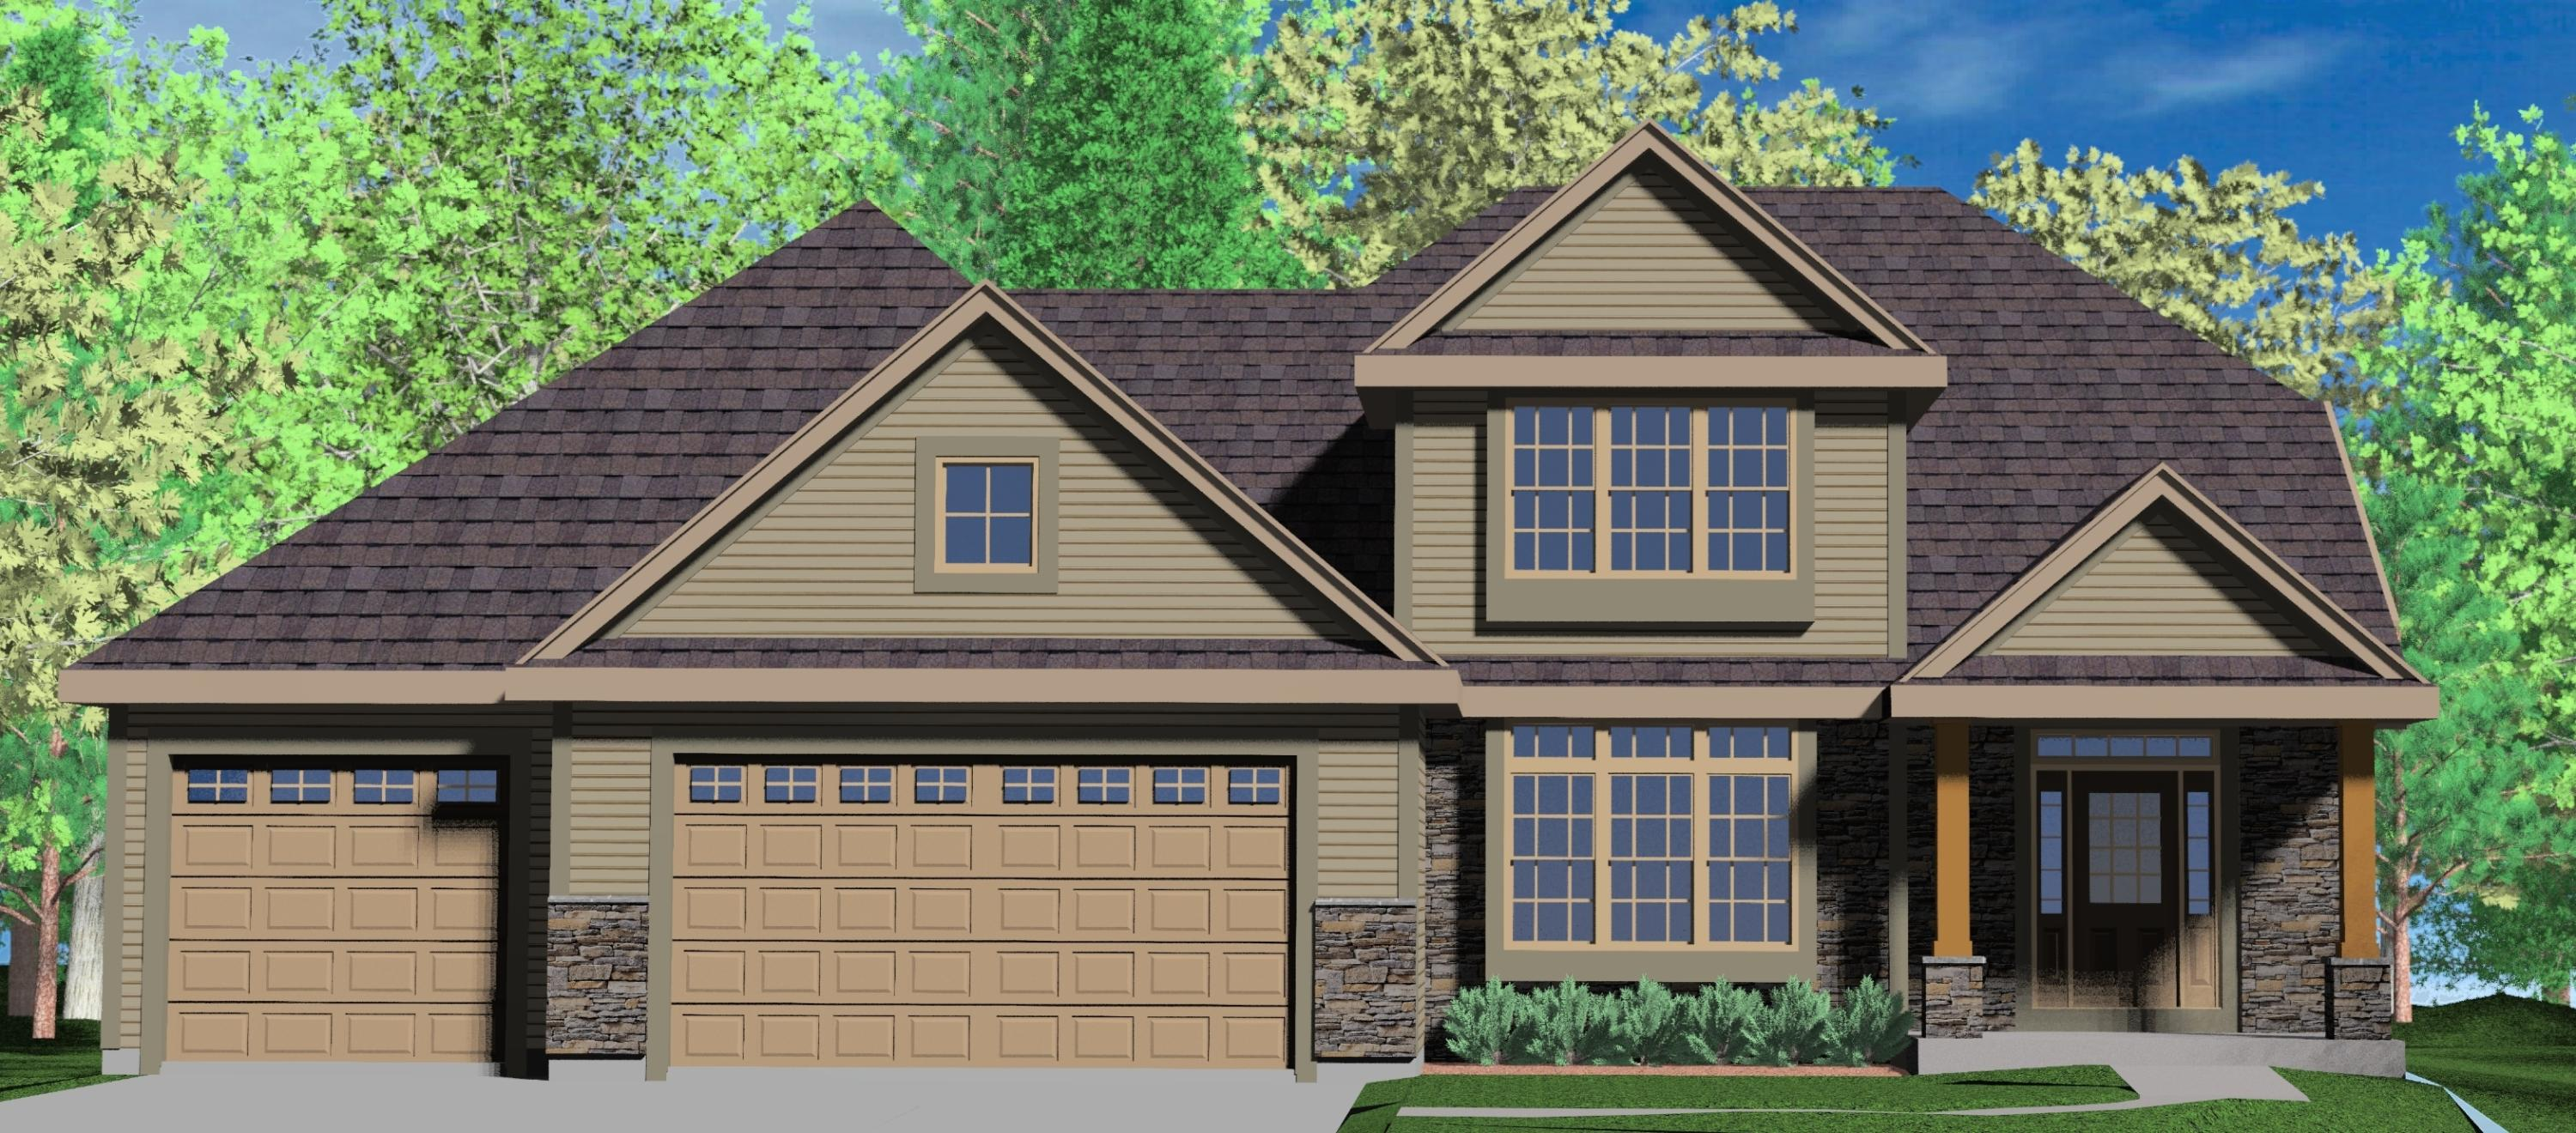 N46W22290 Boxleaf Ln, Pewaukee, Wisconsin 53072, 4 Bedrooms Bedrooms, ,1 BathroomBathrooms,Single-Family,For Sale,Boxleaf Ln,1718146